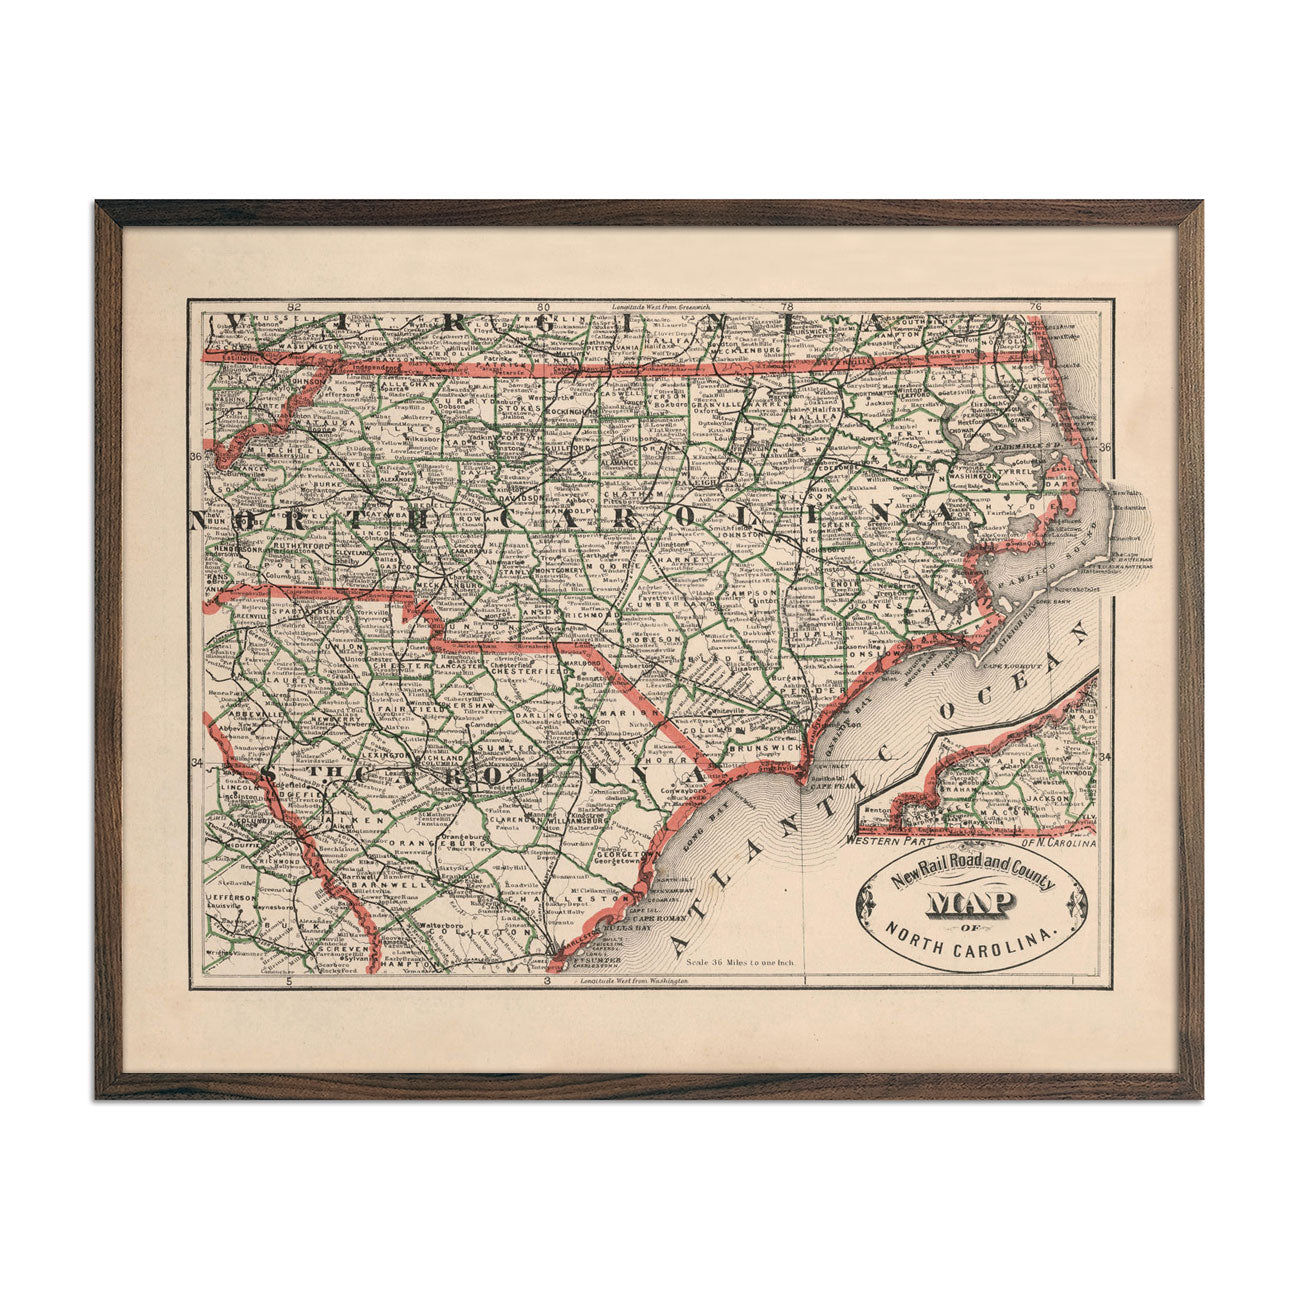 Vintage Map of North Carolina 1883